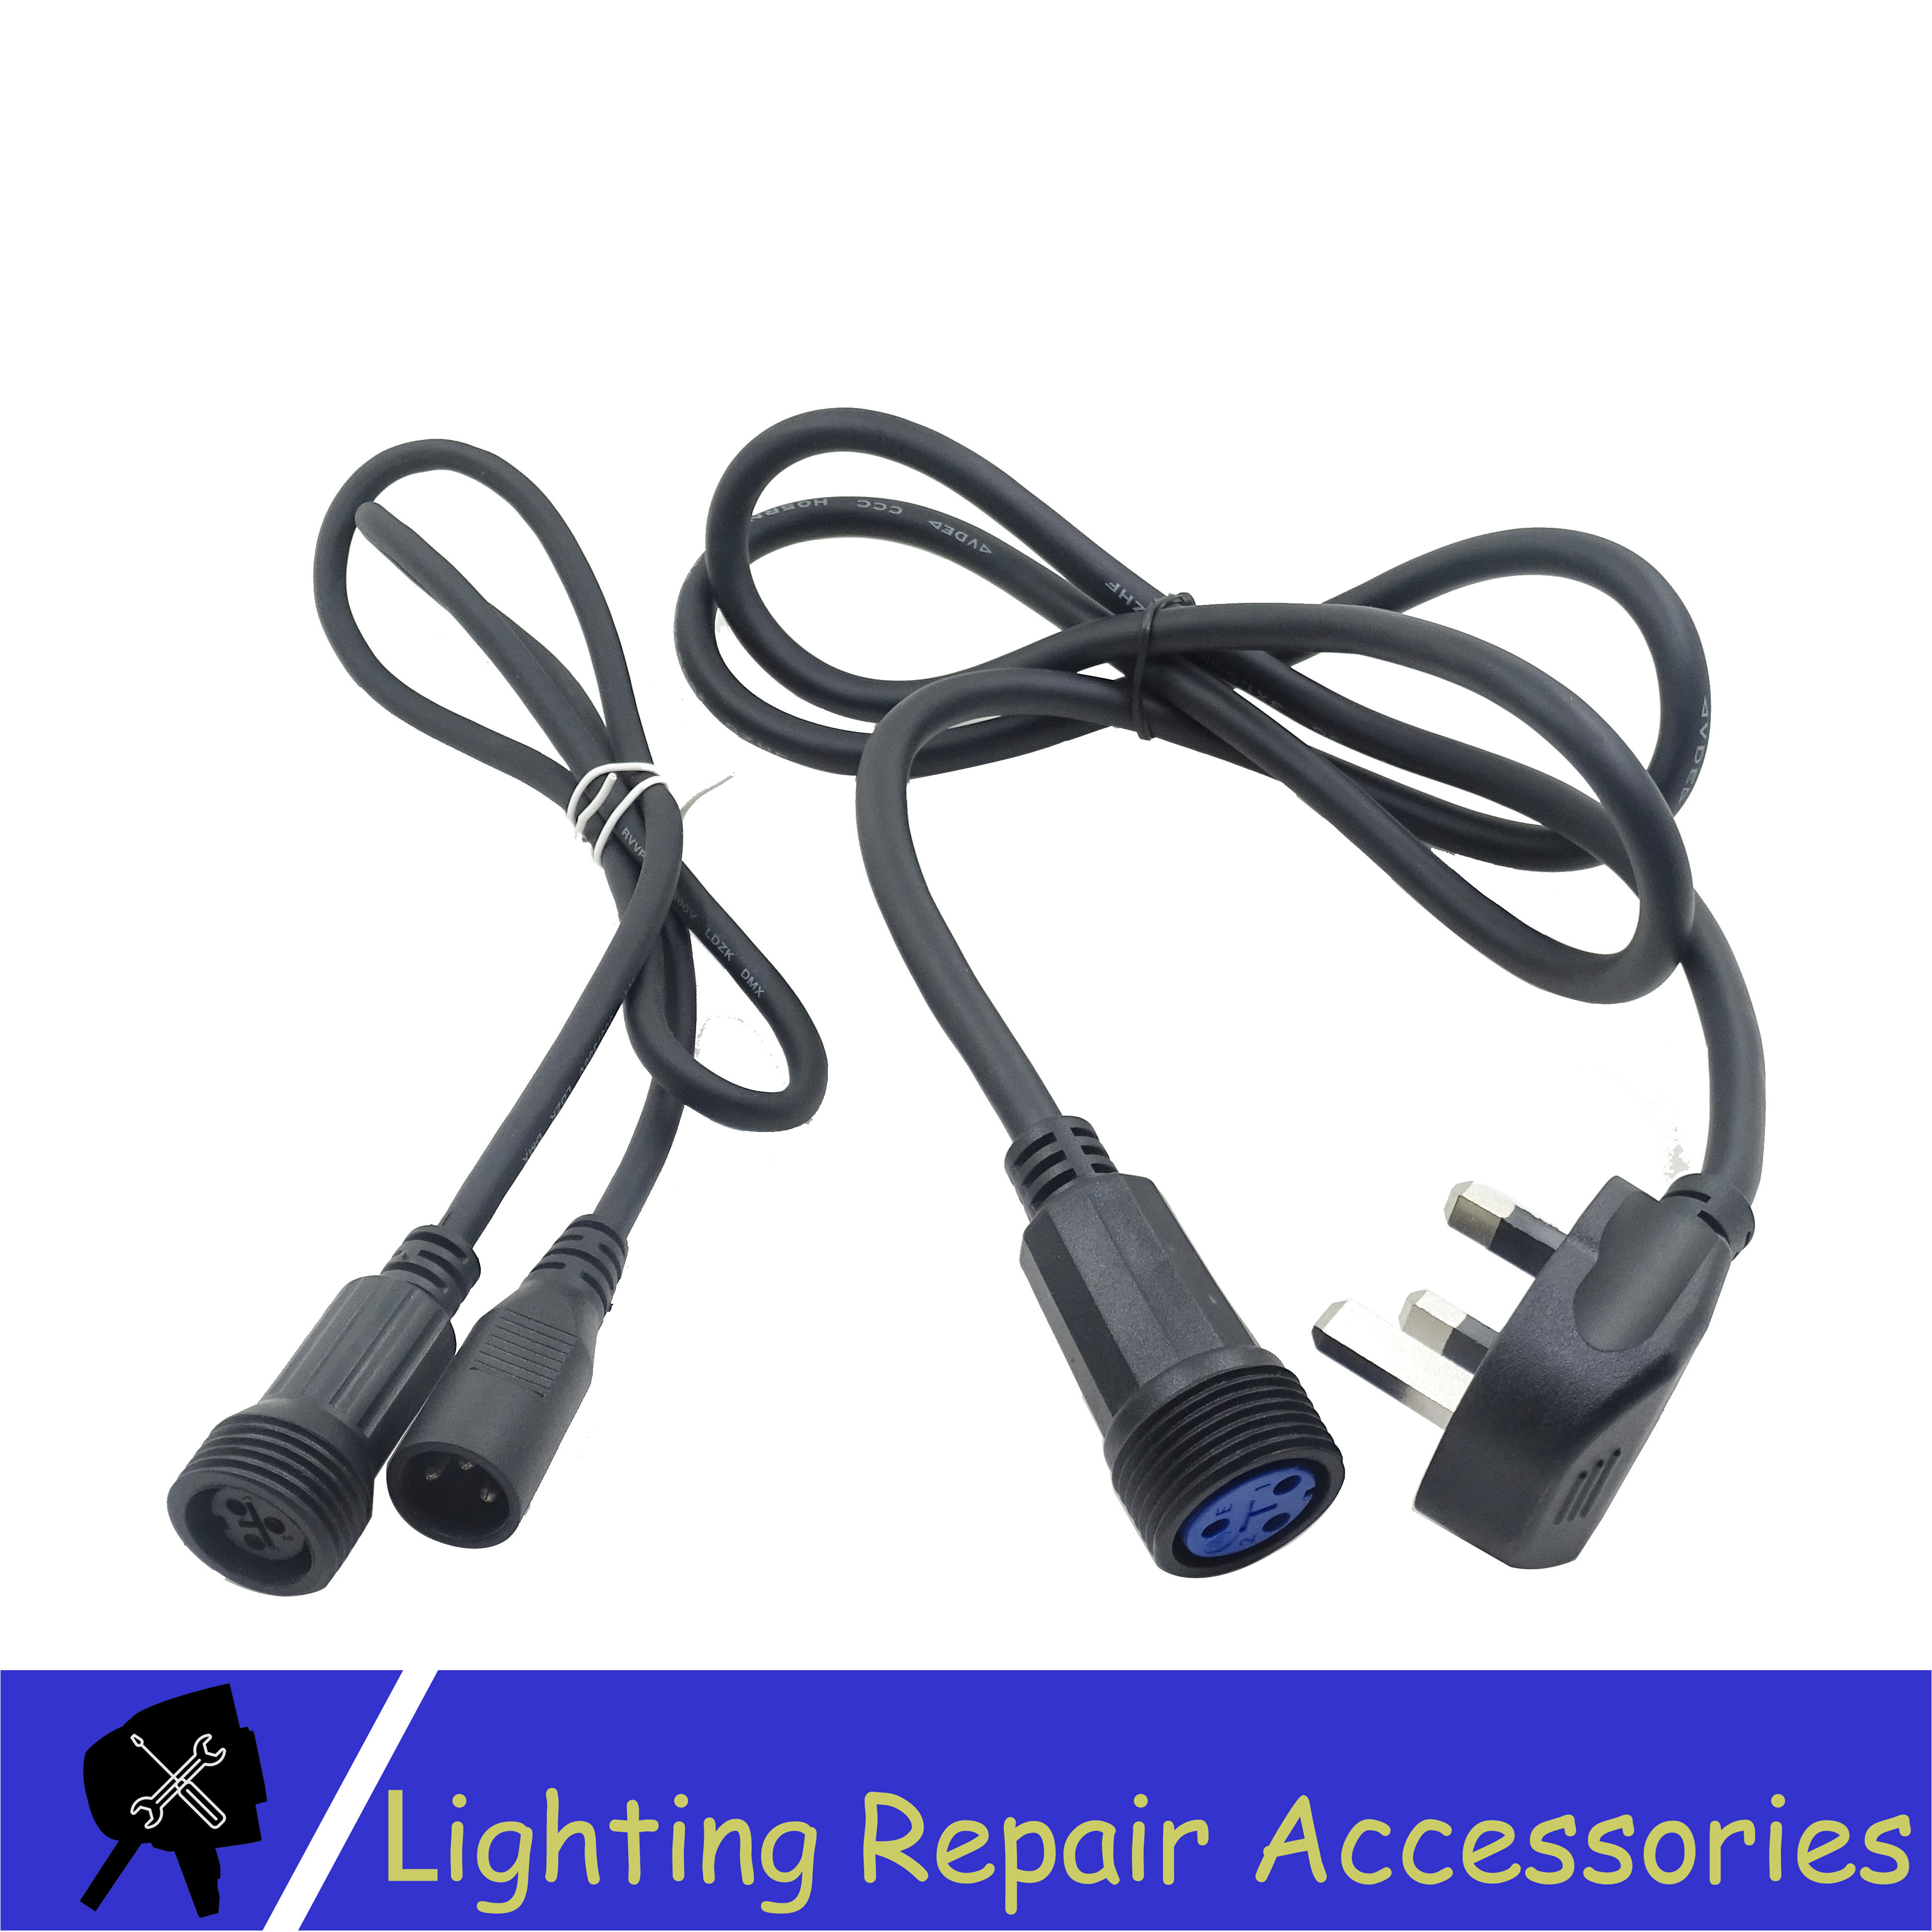 IP65 Waterproof 1m 3Pin DMX Signal Cable And Power Switching Adapter Cable DMX Power Conversion Cable For Outdoor Stage Light